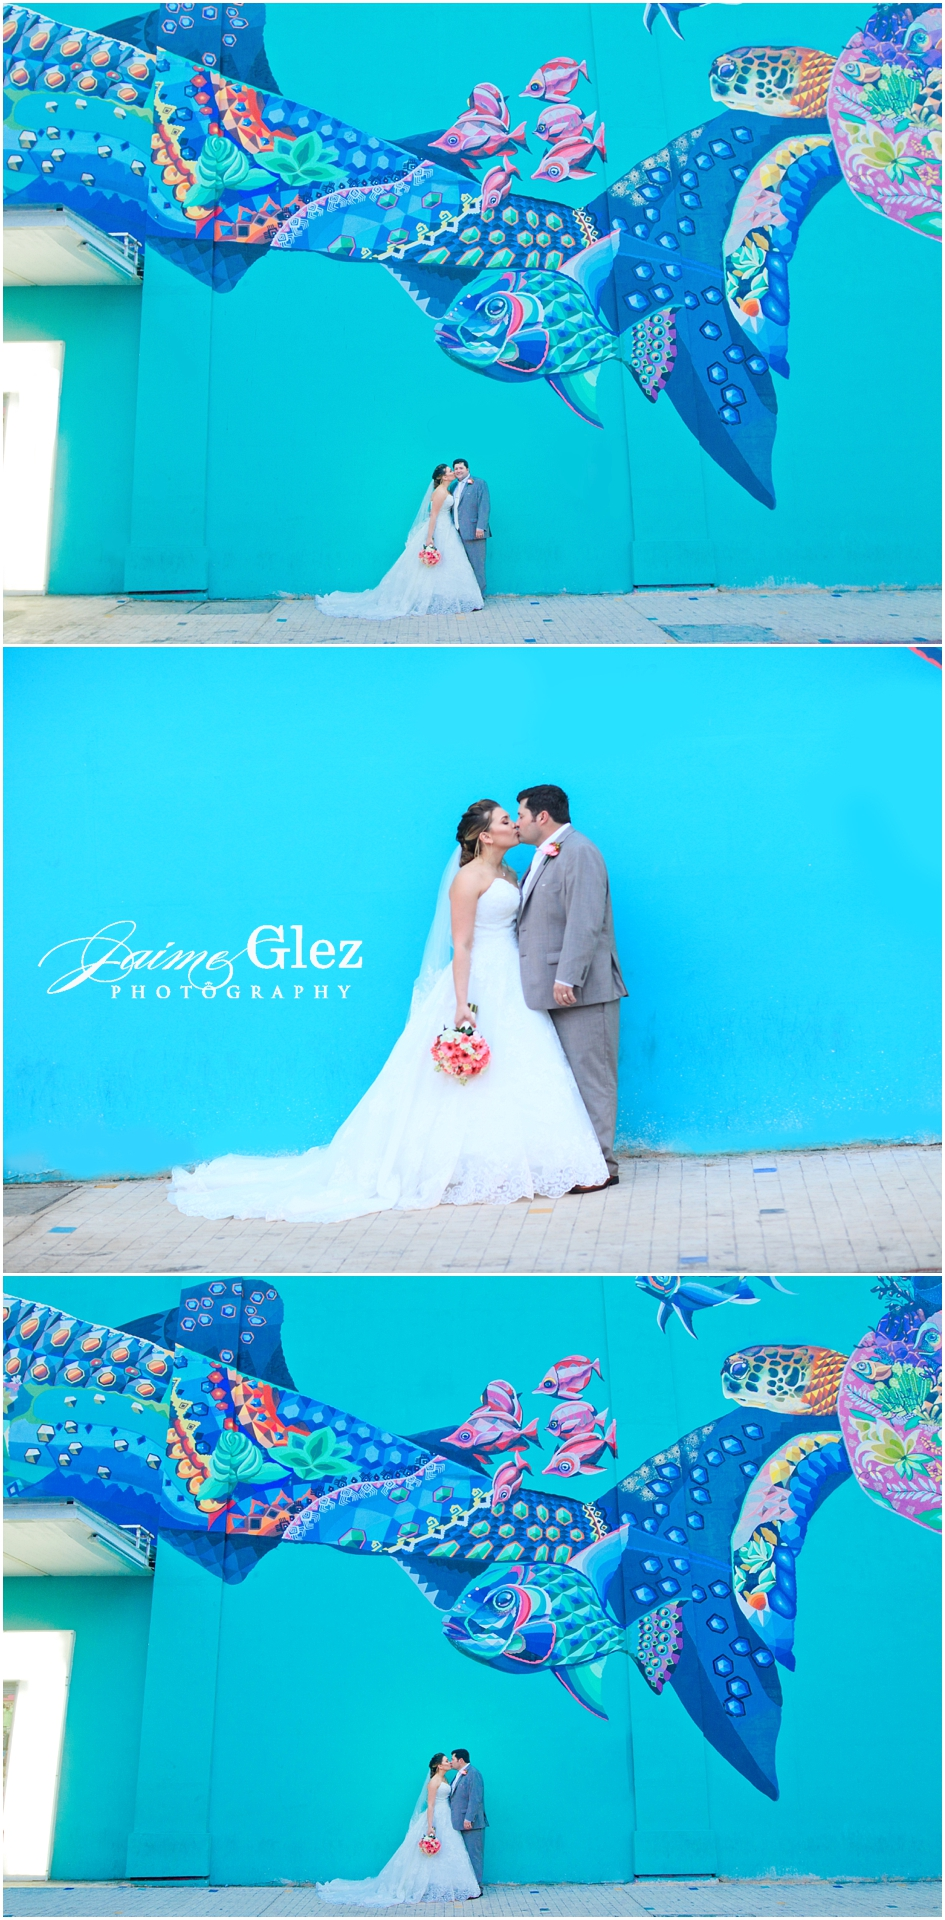 Newlyweds posing in front of a folkloric mural created by Mexican artist Senkoe in Playa del Carmen.